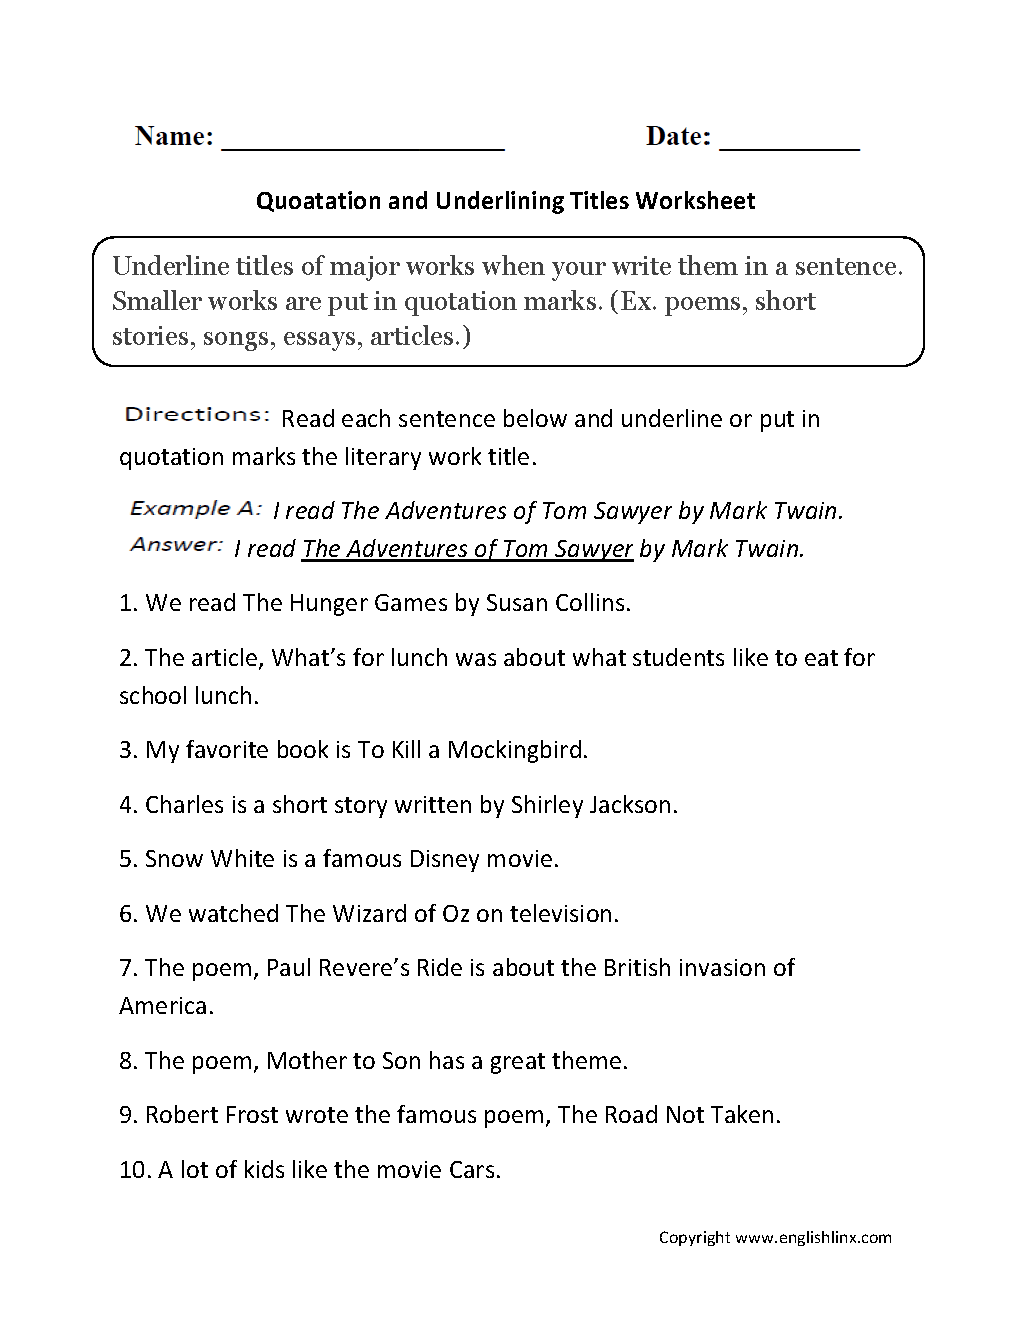 the road not taken by robert frost essay essays and diversions the  grammar mechanics worksheets italics and underlining worksheets quotation and underlining titles worksheets robert frost